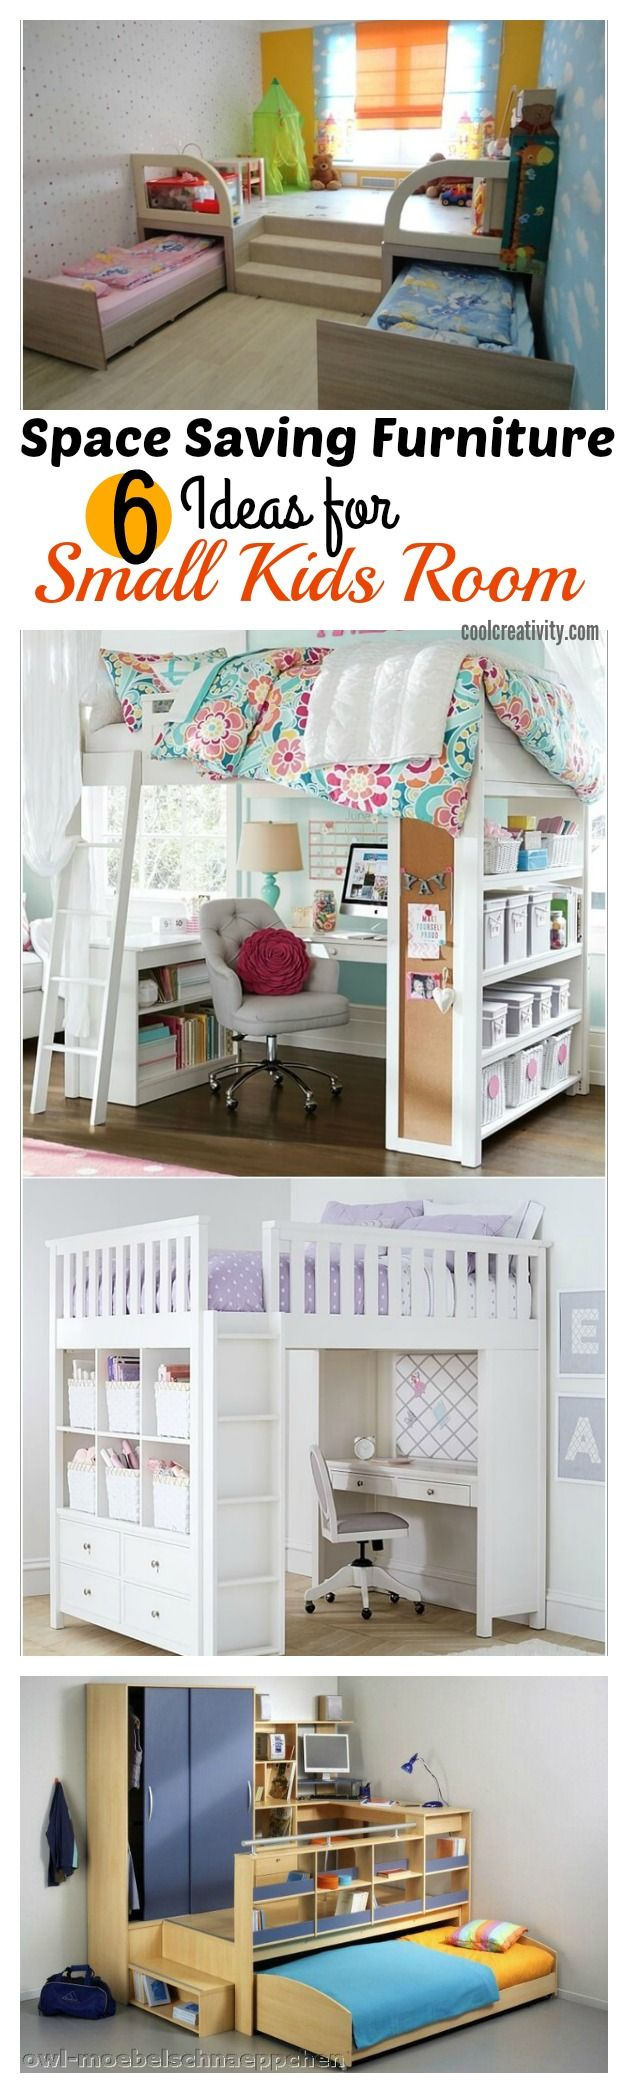 Best Small Kids Rooms Ideas On Pinterest Small Bedroom - Kid bedroom ideas for small rooms